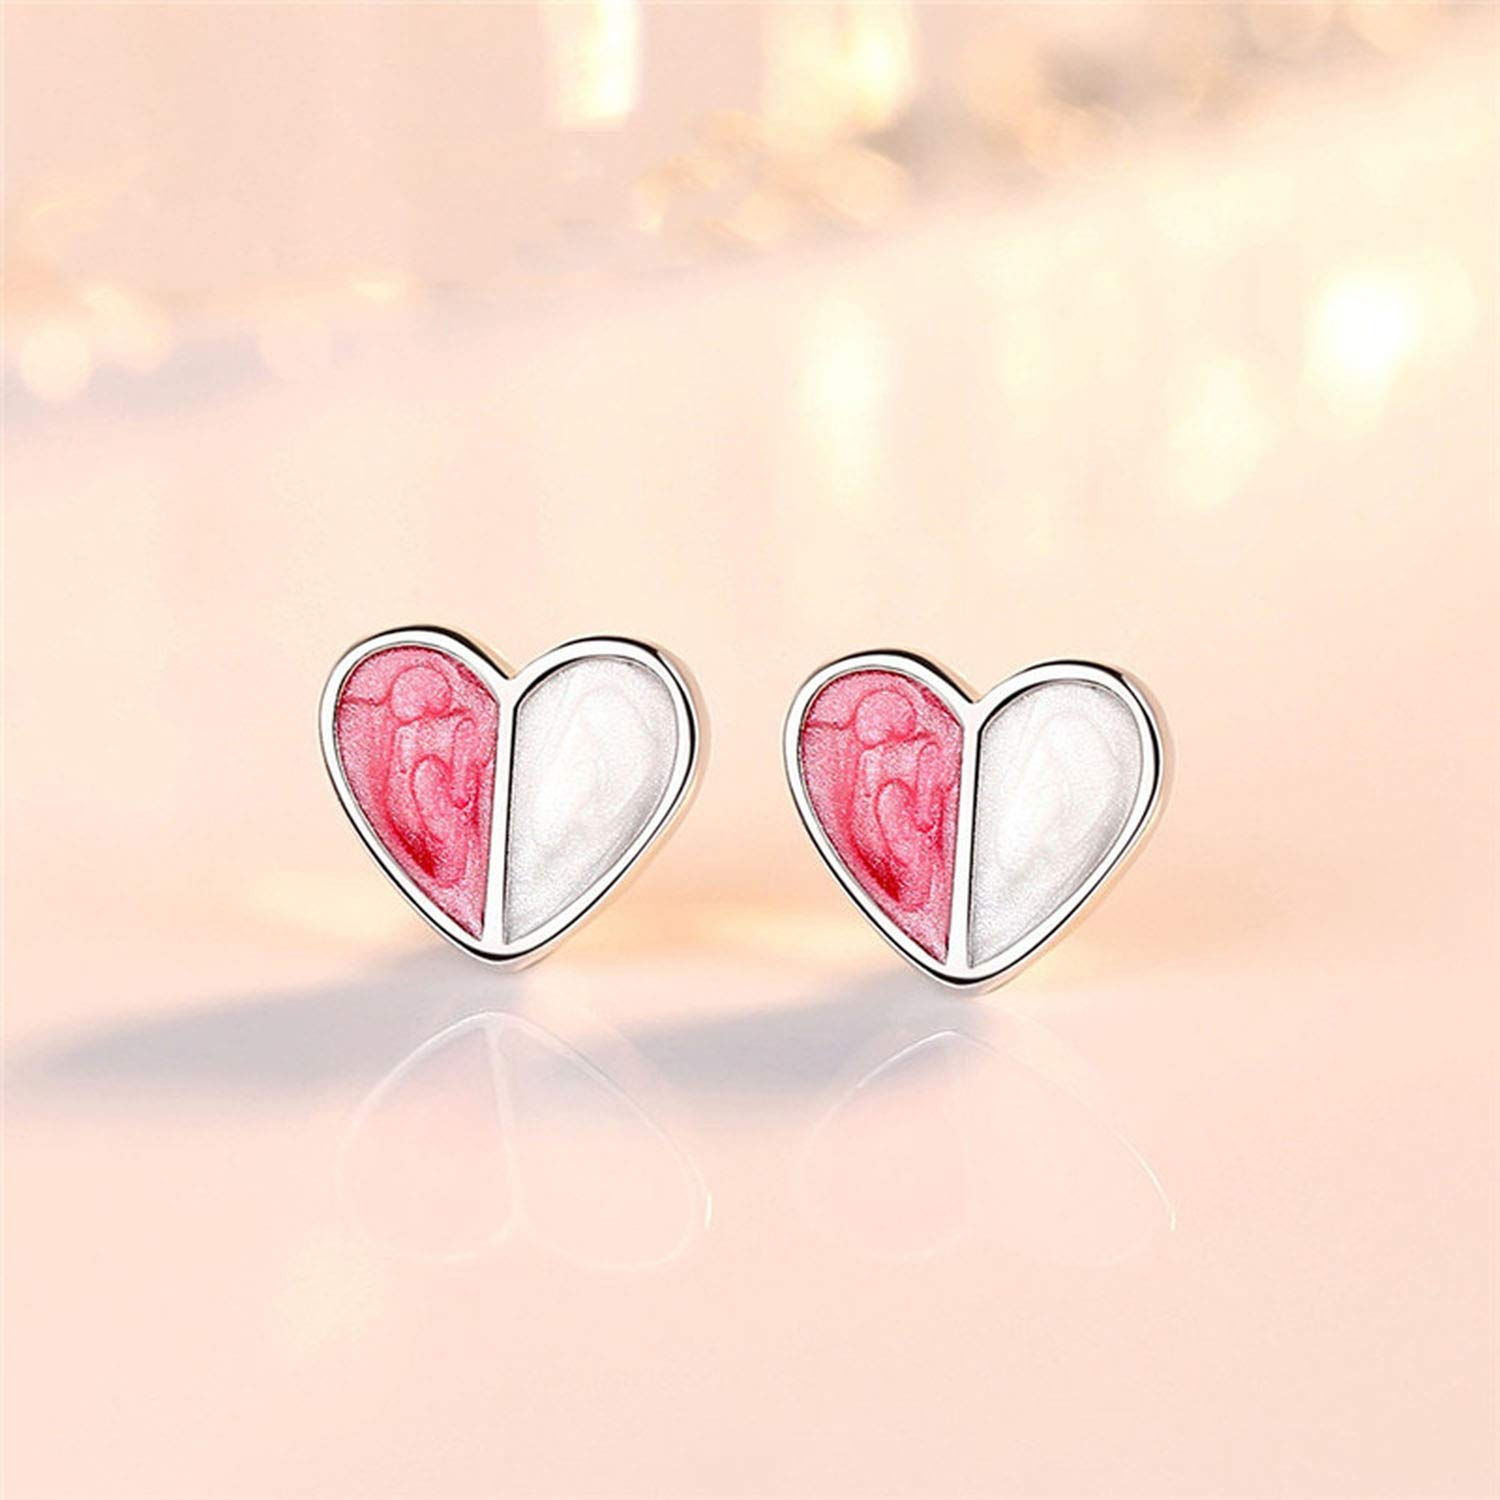 Fashion Jewelry 925 Silver Stud Earrings For Women Girl Romantic Style Ear Stud